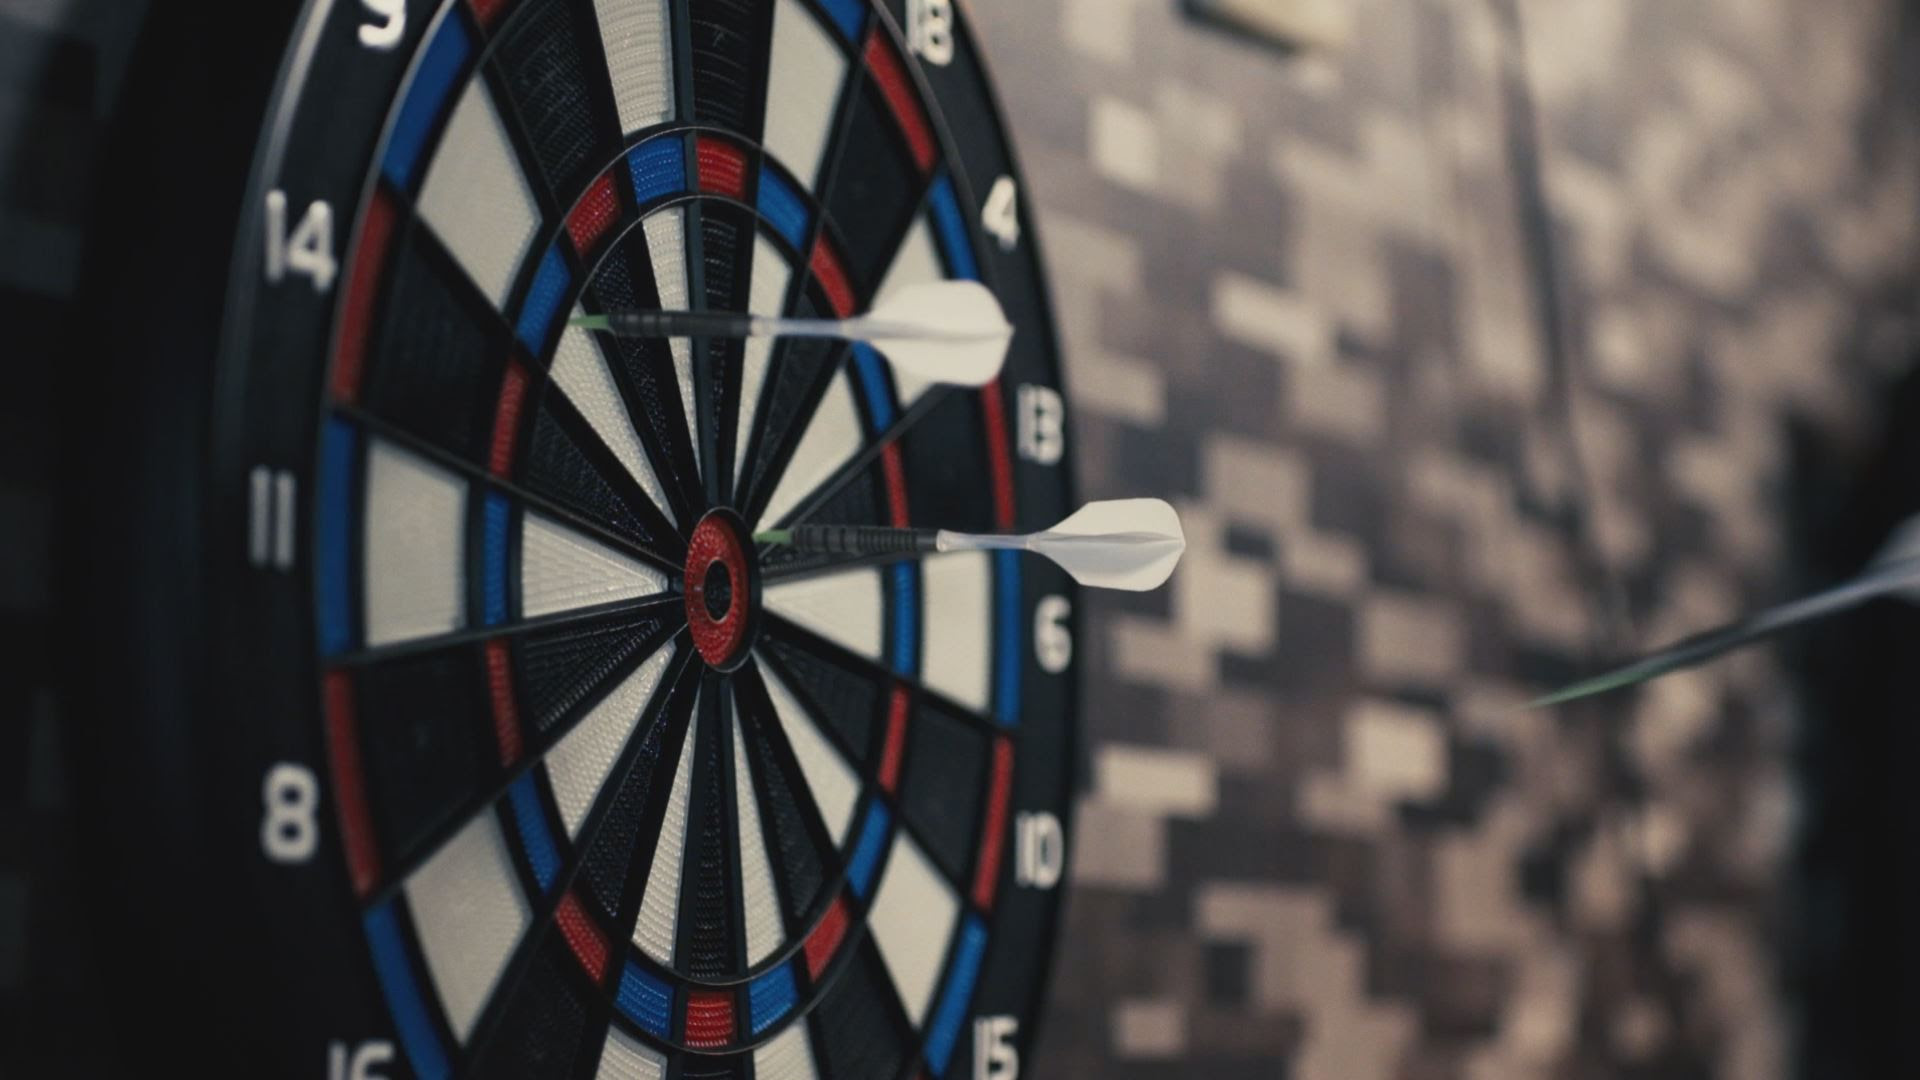 Darts Connect The World S First Smart Dartboard With An Online